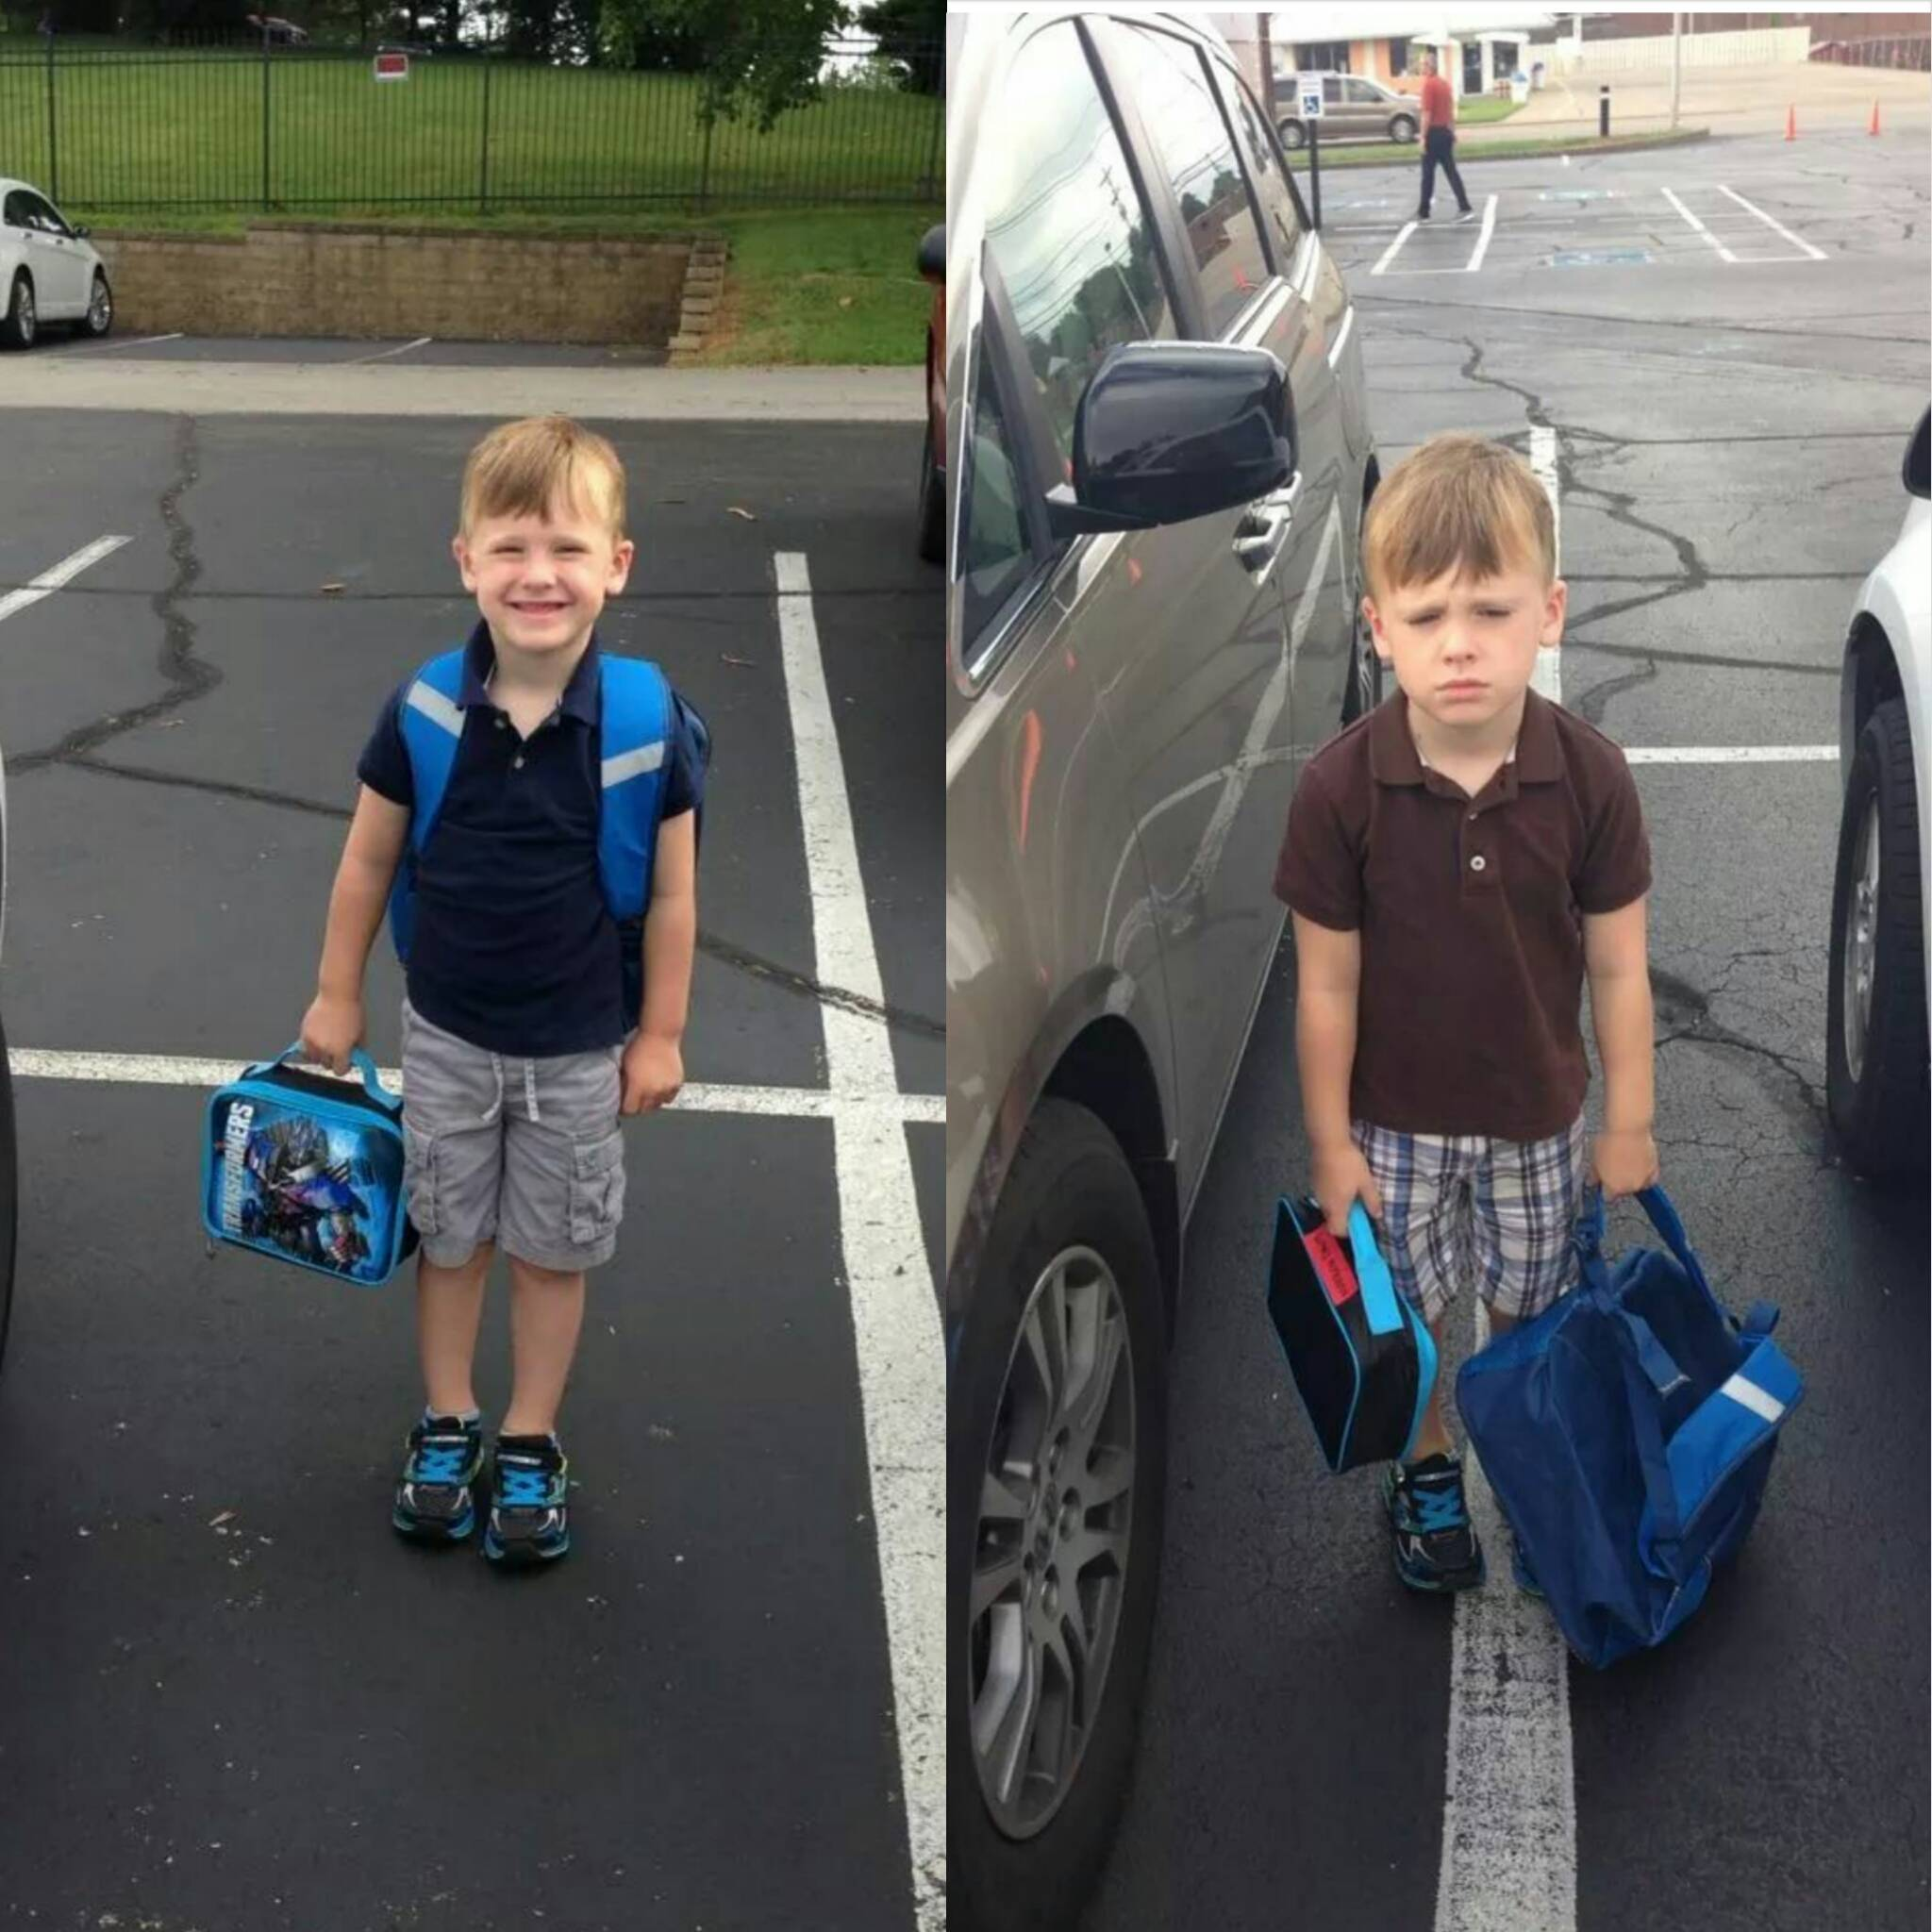 first day versus second day pictures